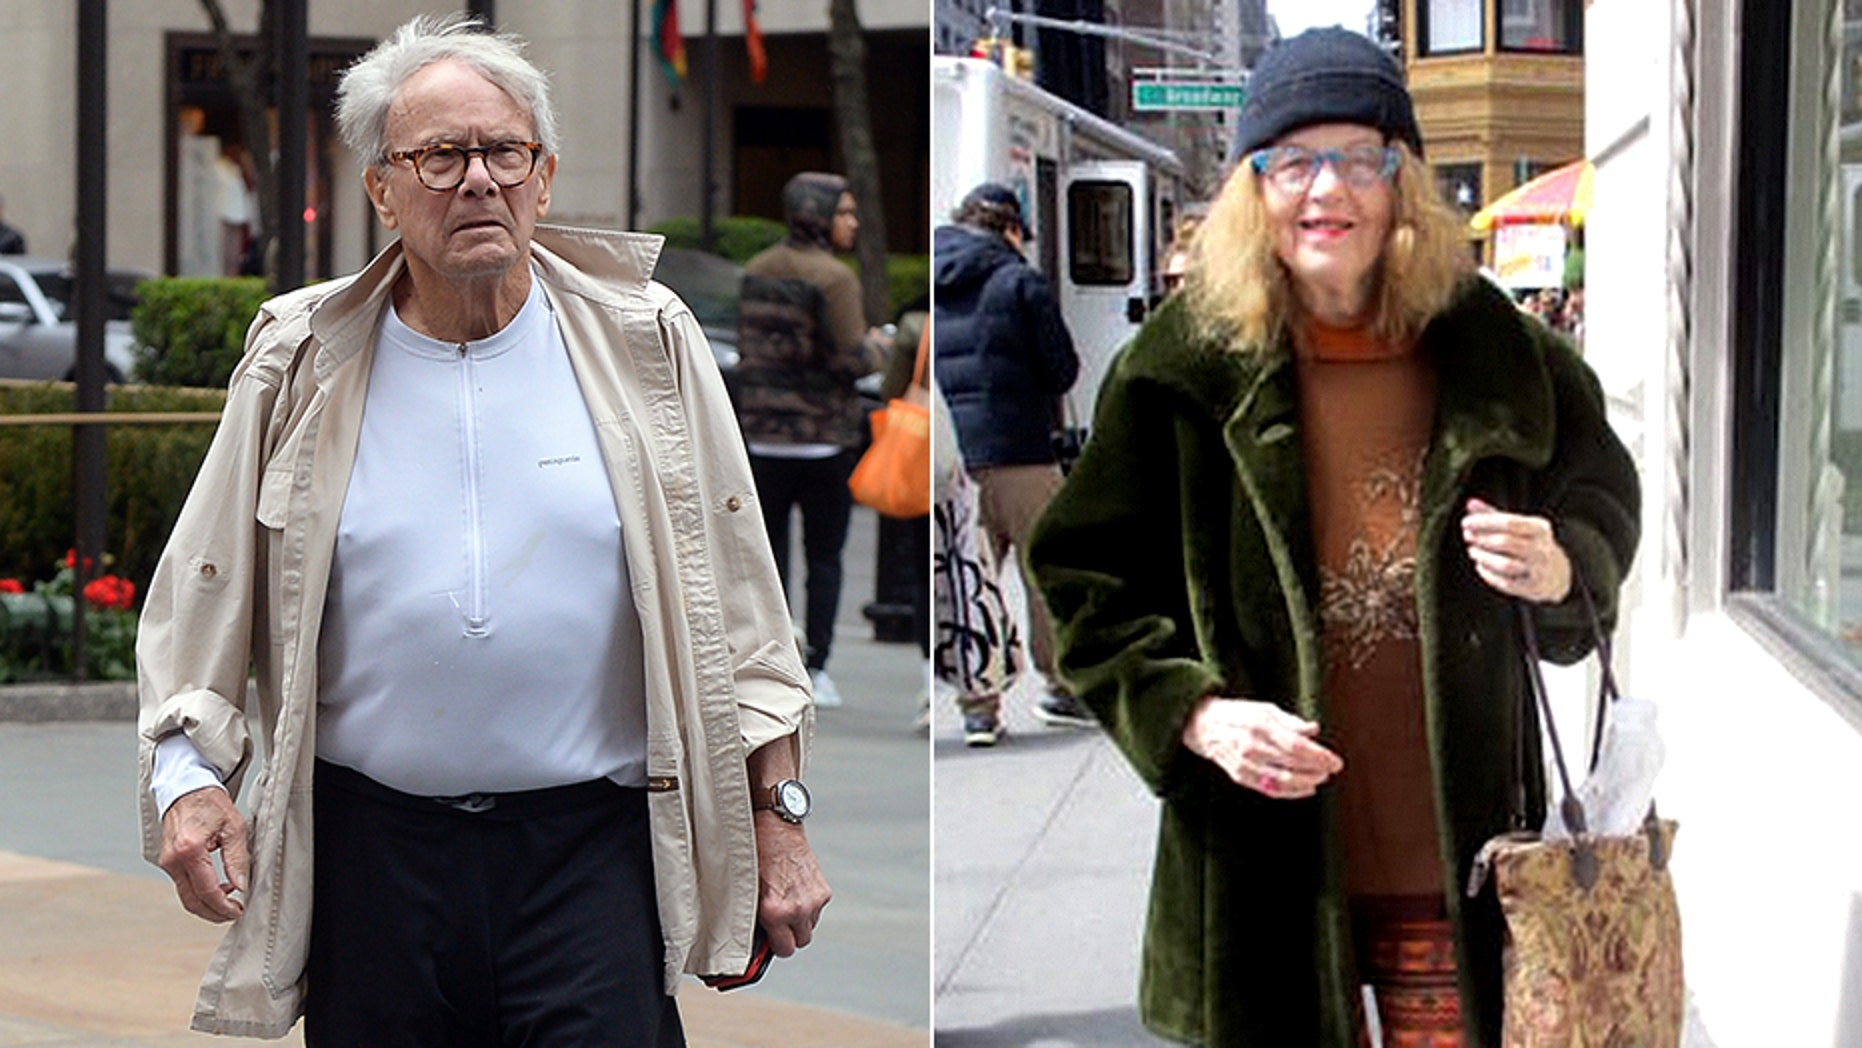 Mary Reinholz, right, has accused Tom Brokaw of forcibly kissing her.